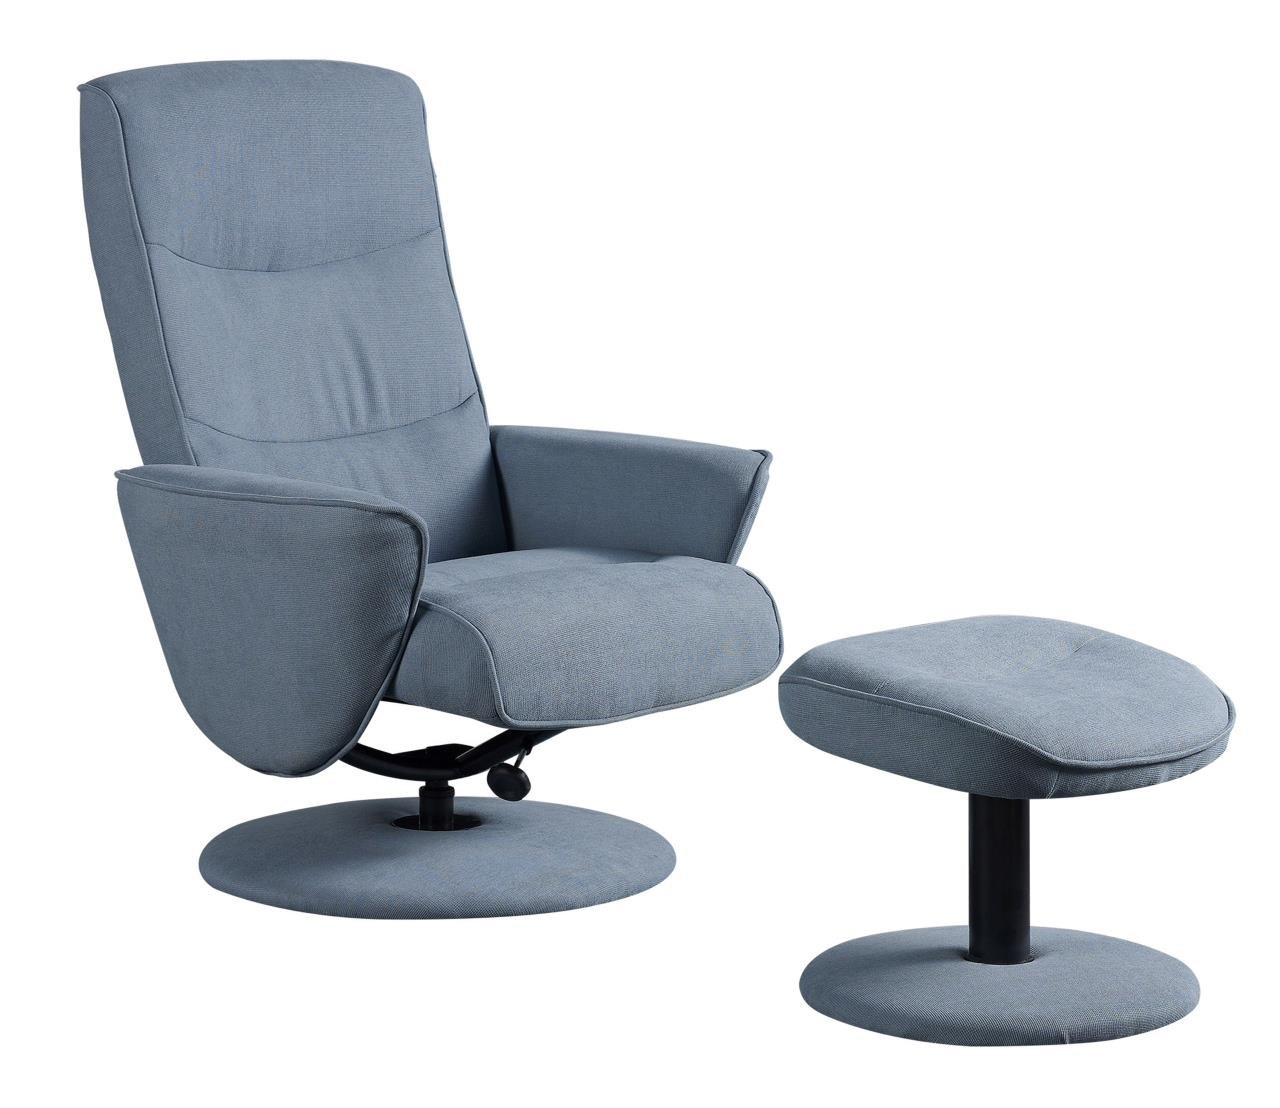 Mac Motion Chairs Mac Motion Chairs Mac Motion Chairs 832 32 Uph Contemporary Swivel